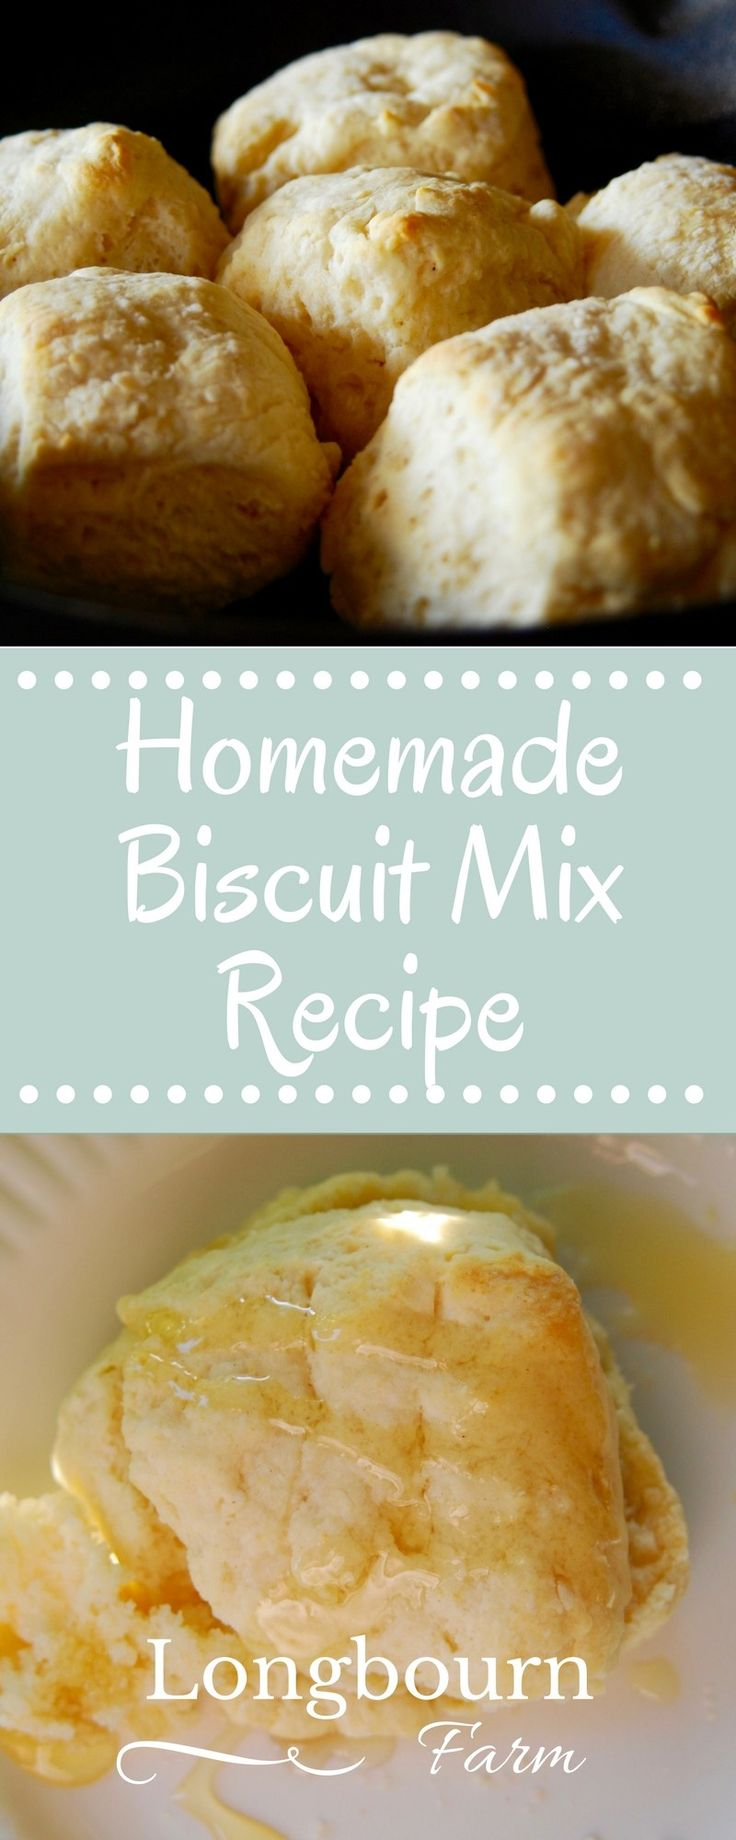 This homemade biscuit mix recipe is easy and delicious. It makes having homemade quick bread a snap at any meal! Light and fluffy biscuits, every time.